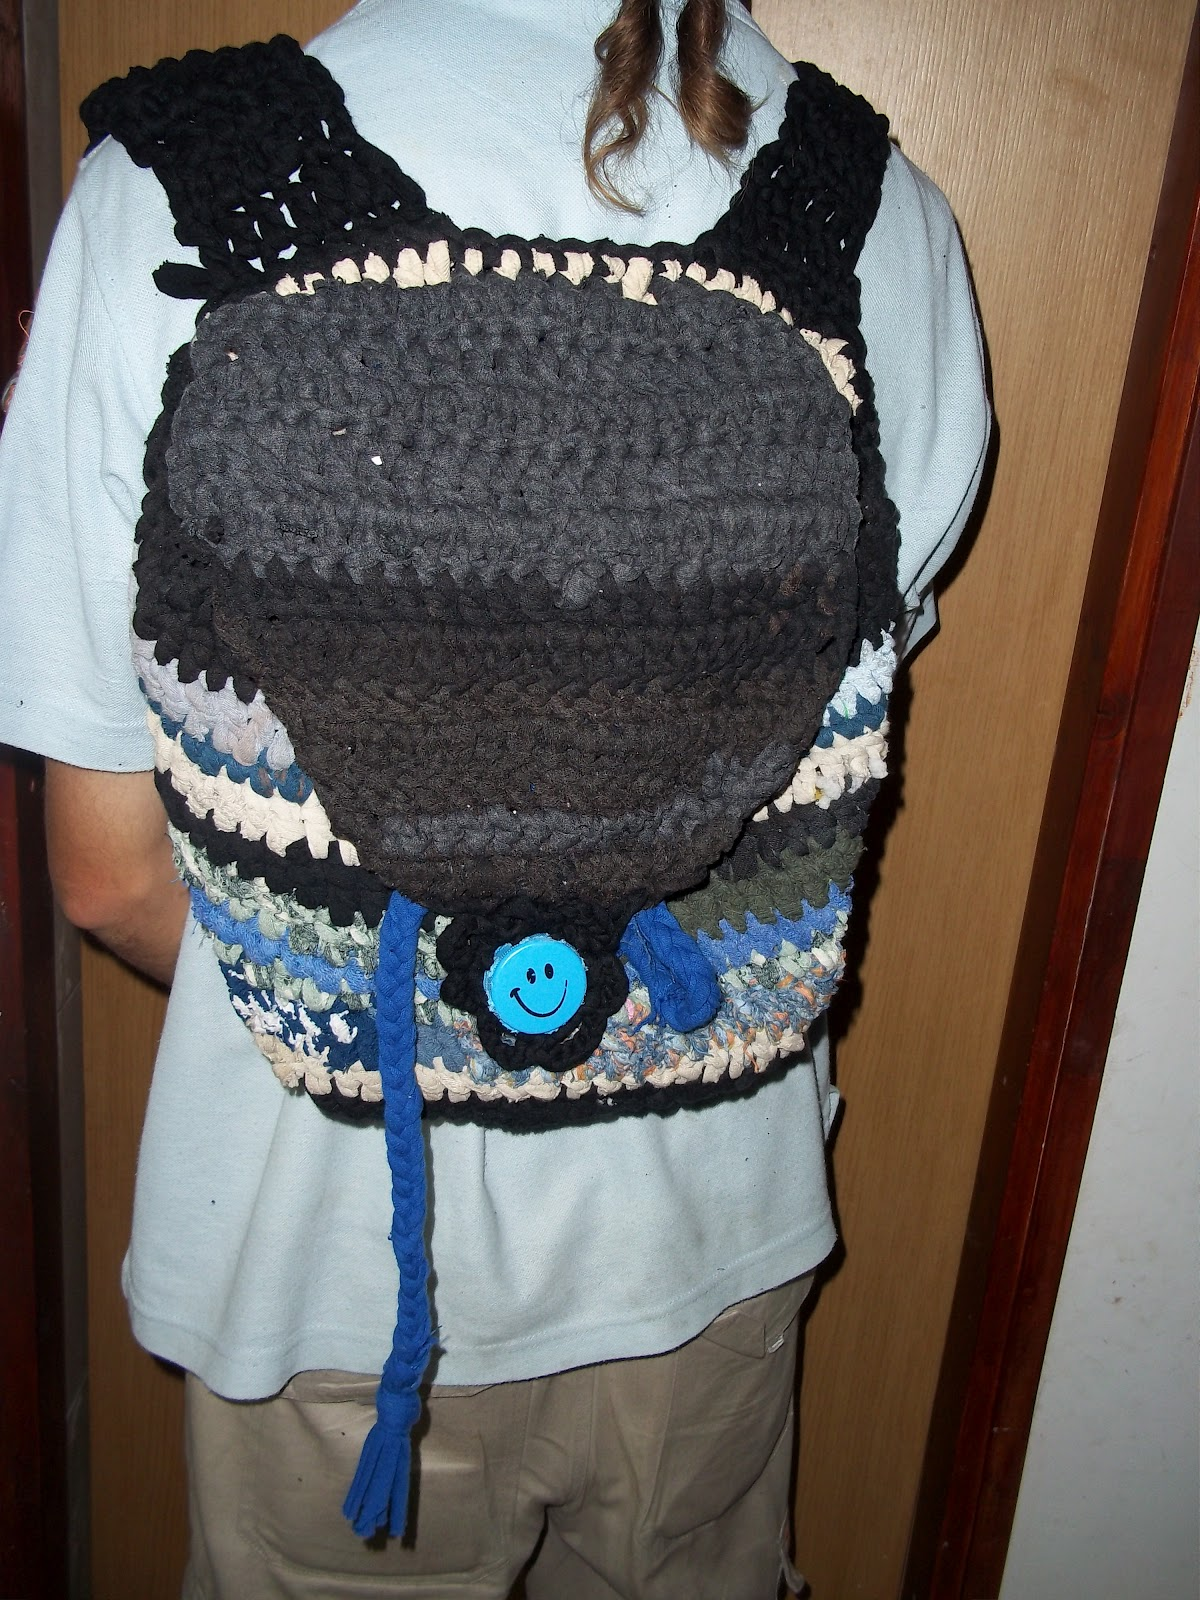 Upcycled Crocheted Backpack Made From Old Socks Tutorial